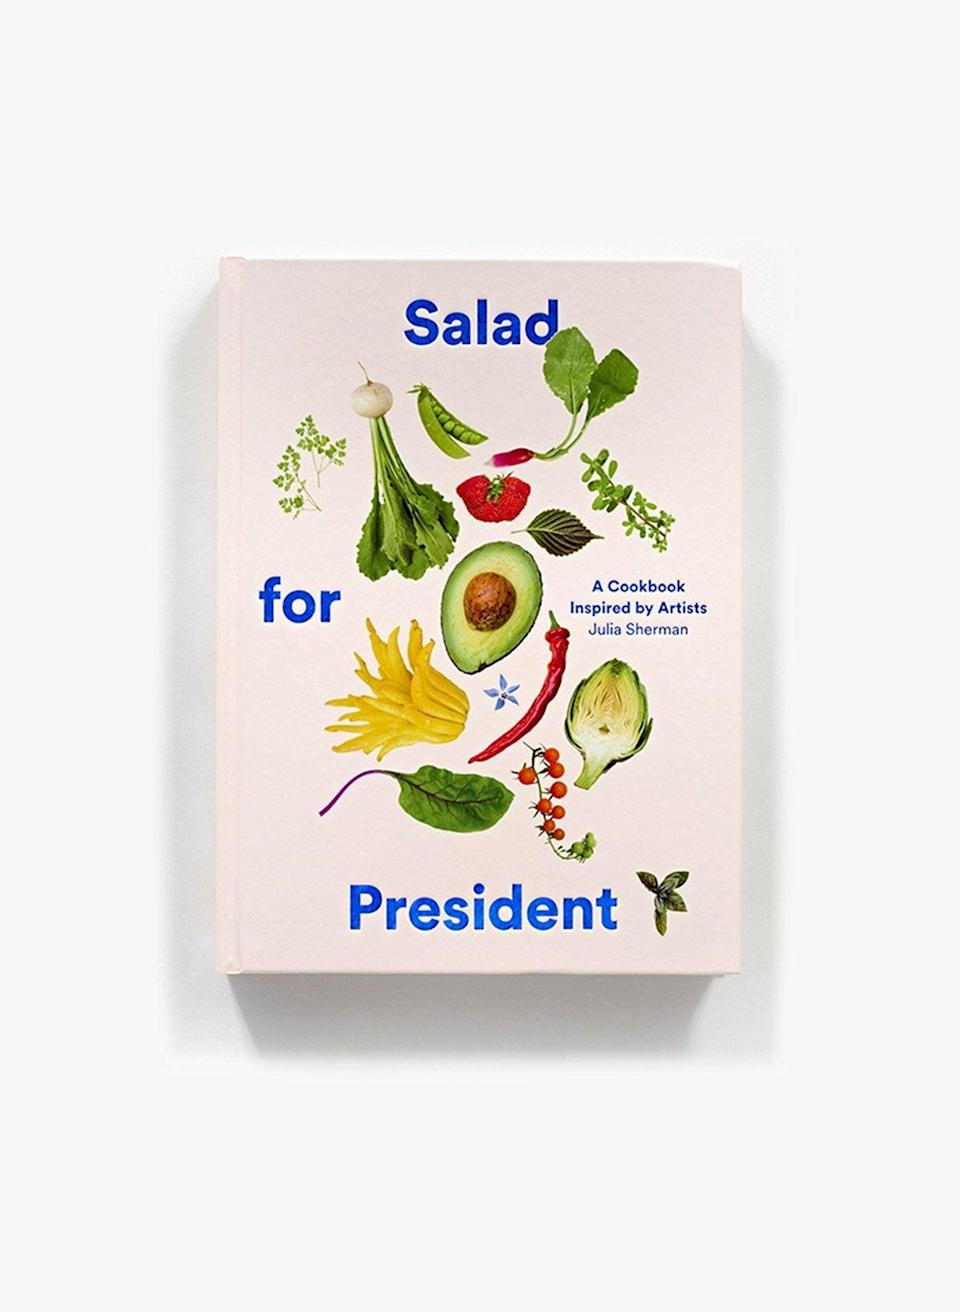 """Salad inspired by artists? She will LOVE this. <br><br><strong>Abrams Publishing</strong> Salad for President: A Cookbook Inspired by Artists, $, available at <a href=""""https://go.skimresources.com/?id=30283X879131&url=https%3A%2F%2Fbookshop.org%2Fbooks%2Fsalad-for-president-a-cookbook-inspired-by-artists%2F9781419724114"""" rel=""""nofollow noopener"""" target=""""_blank"""" data-ylk=""""slk:bookshop.org"""" class=""""link rapid-noclick-resp"""">bookshop.org</a>"""